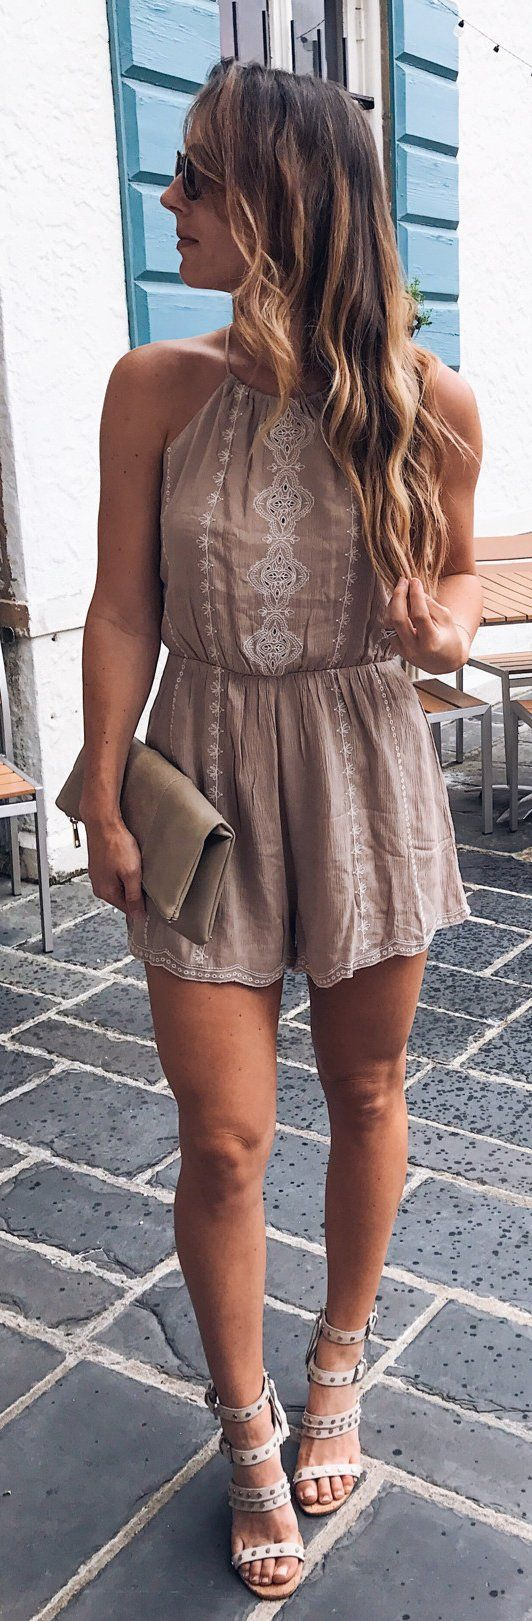 #summer #outfits We Made It Through Monday Y'all!  This Little Boho Romper Is A Must Have For Summer... It's Under $50 And Also Comes In White! // Brown Romper + White Studded Sandals